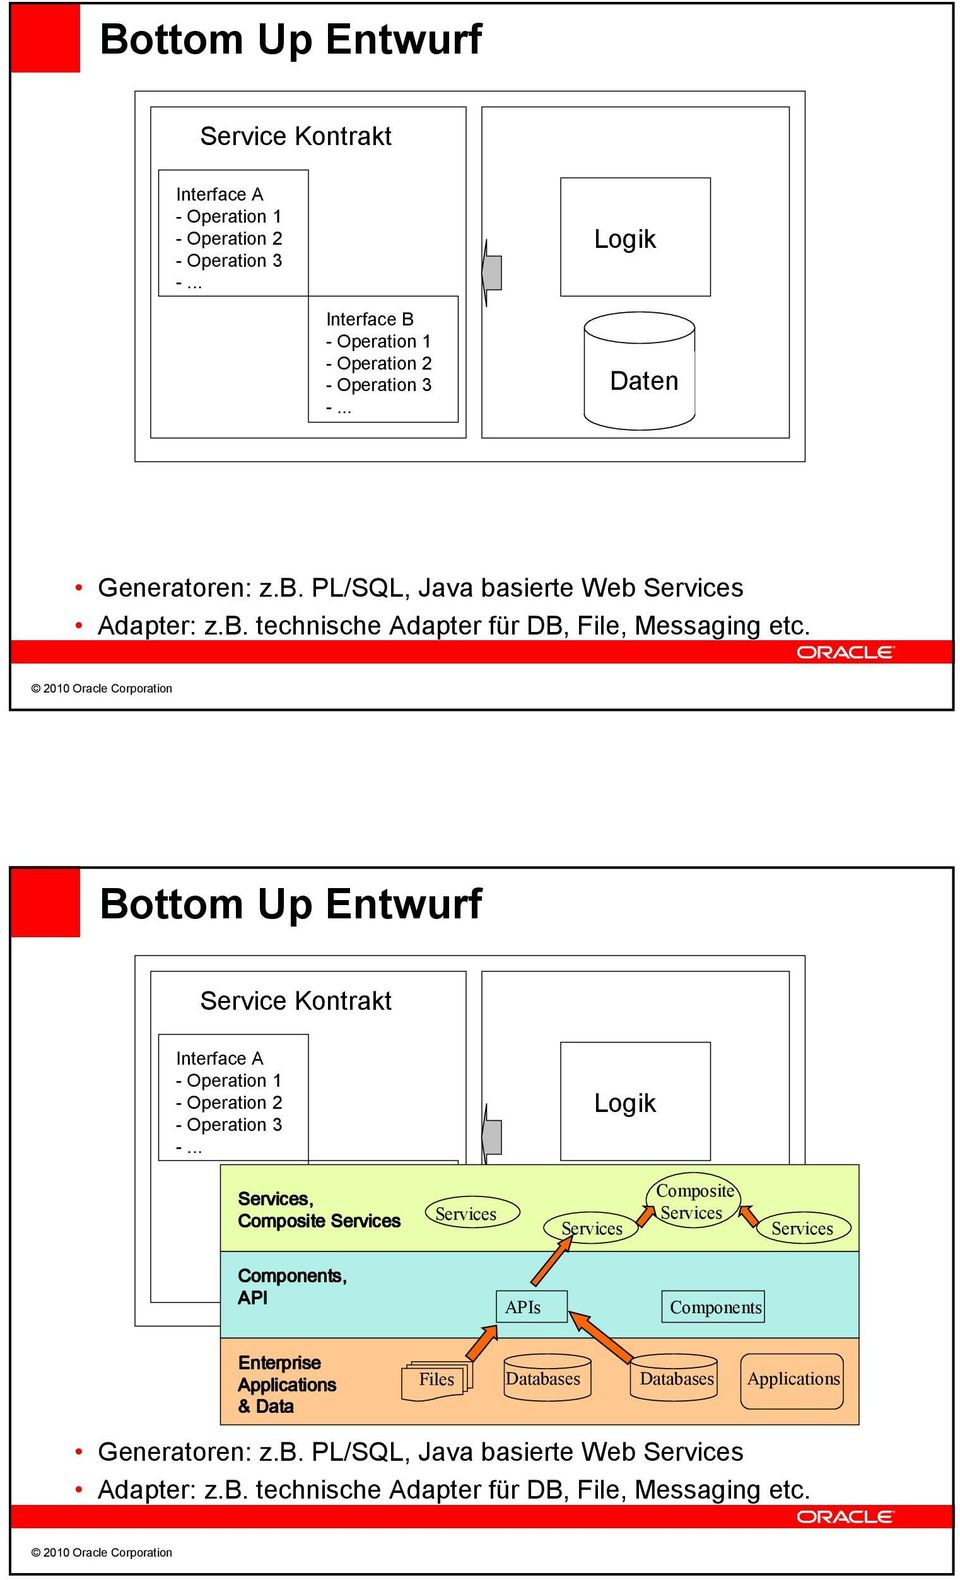 Bottom Up Entwurf Service Kontrakt Interface A - Operation Interface B Services, - Operation Composite - Services Services Operation 2 Components, API